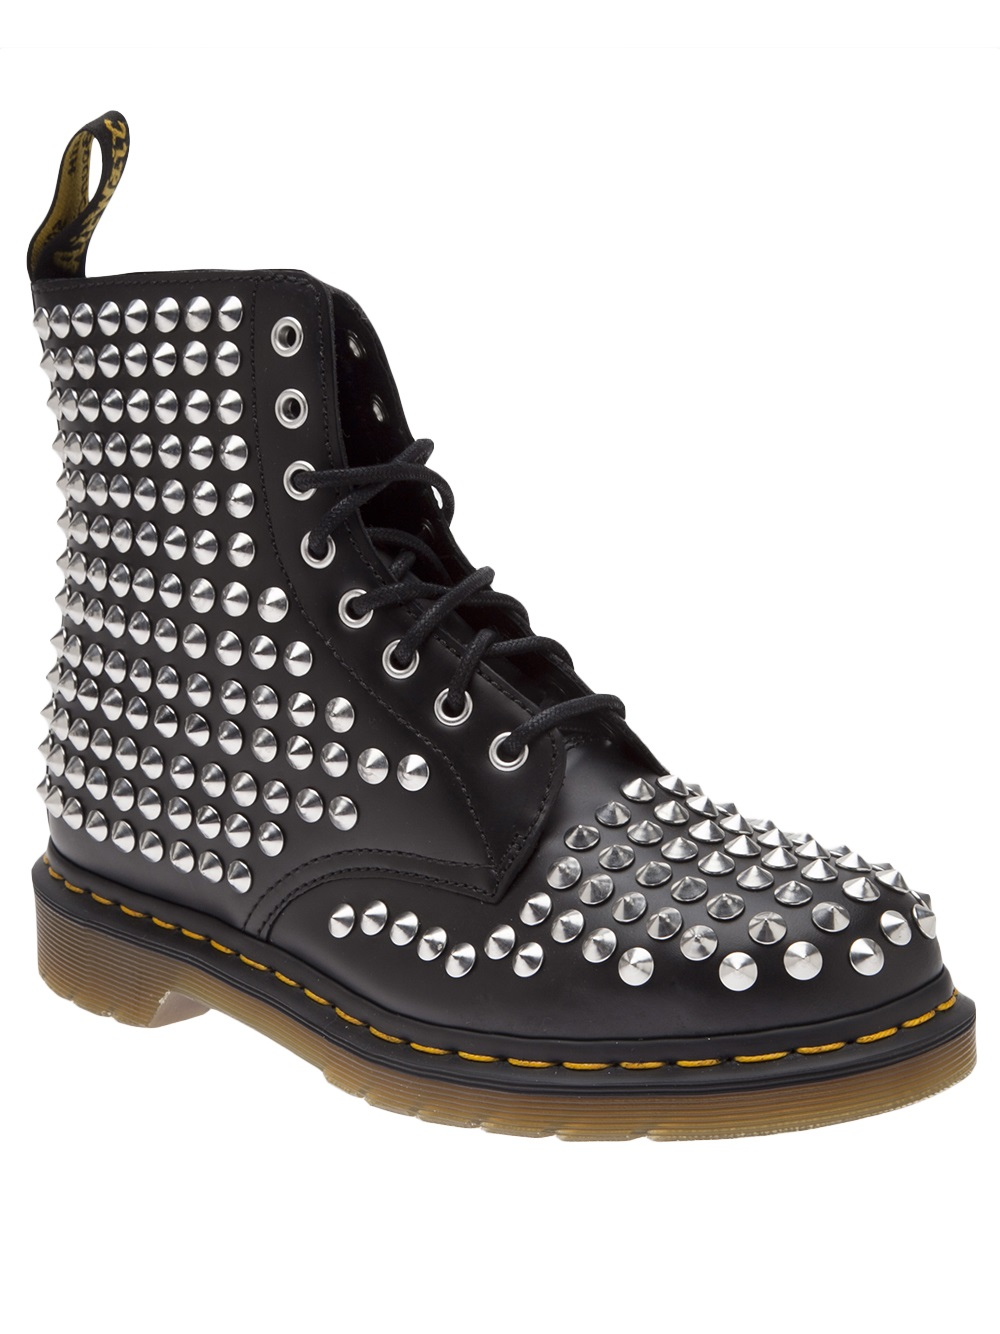 Black Spiked Shoe Boots